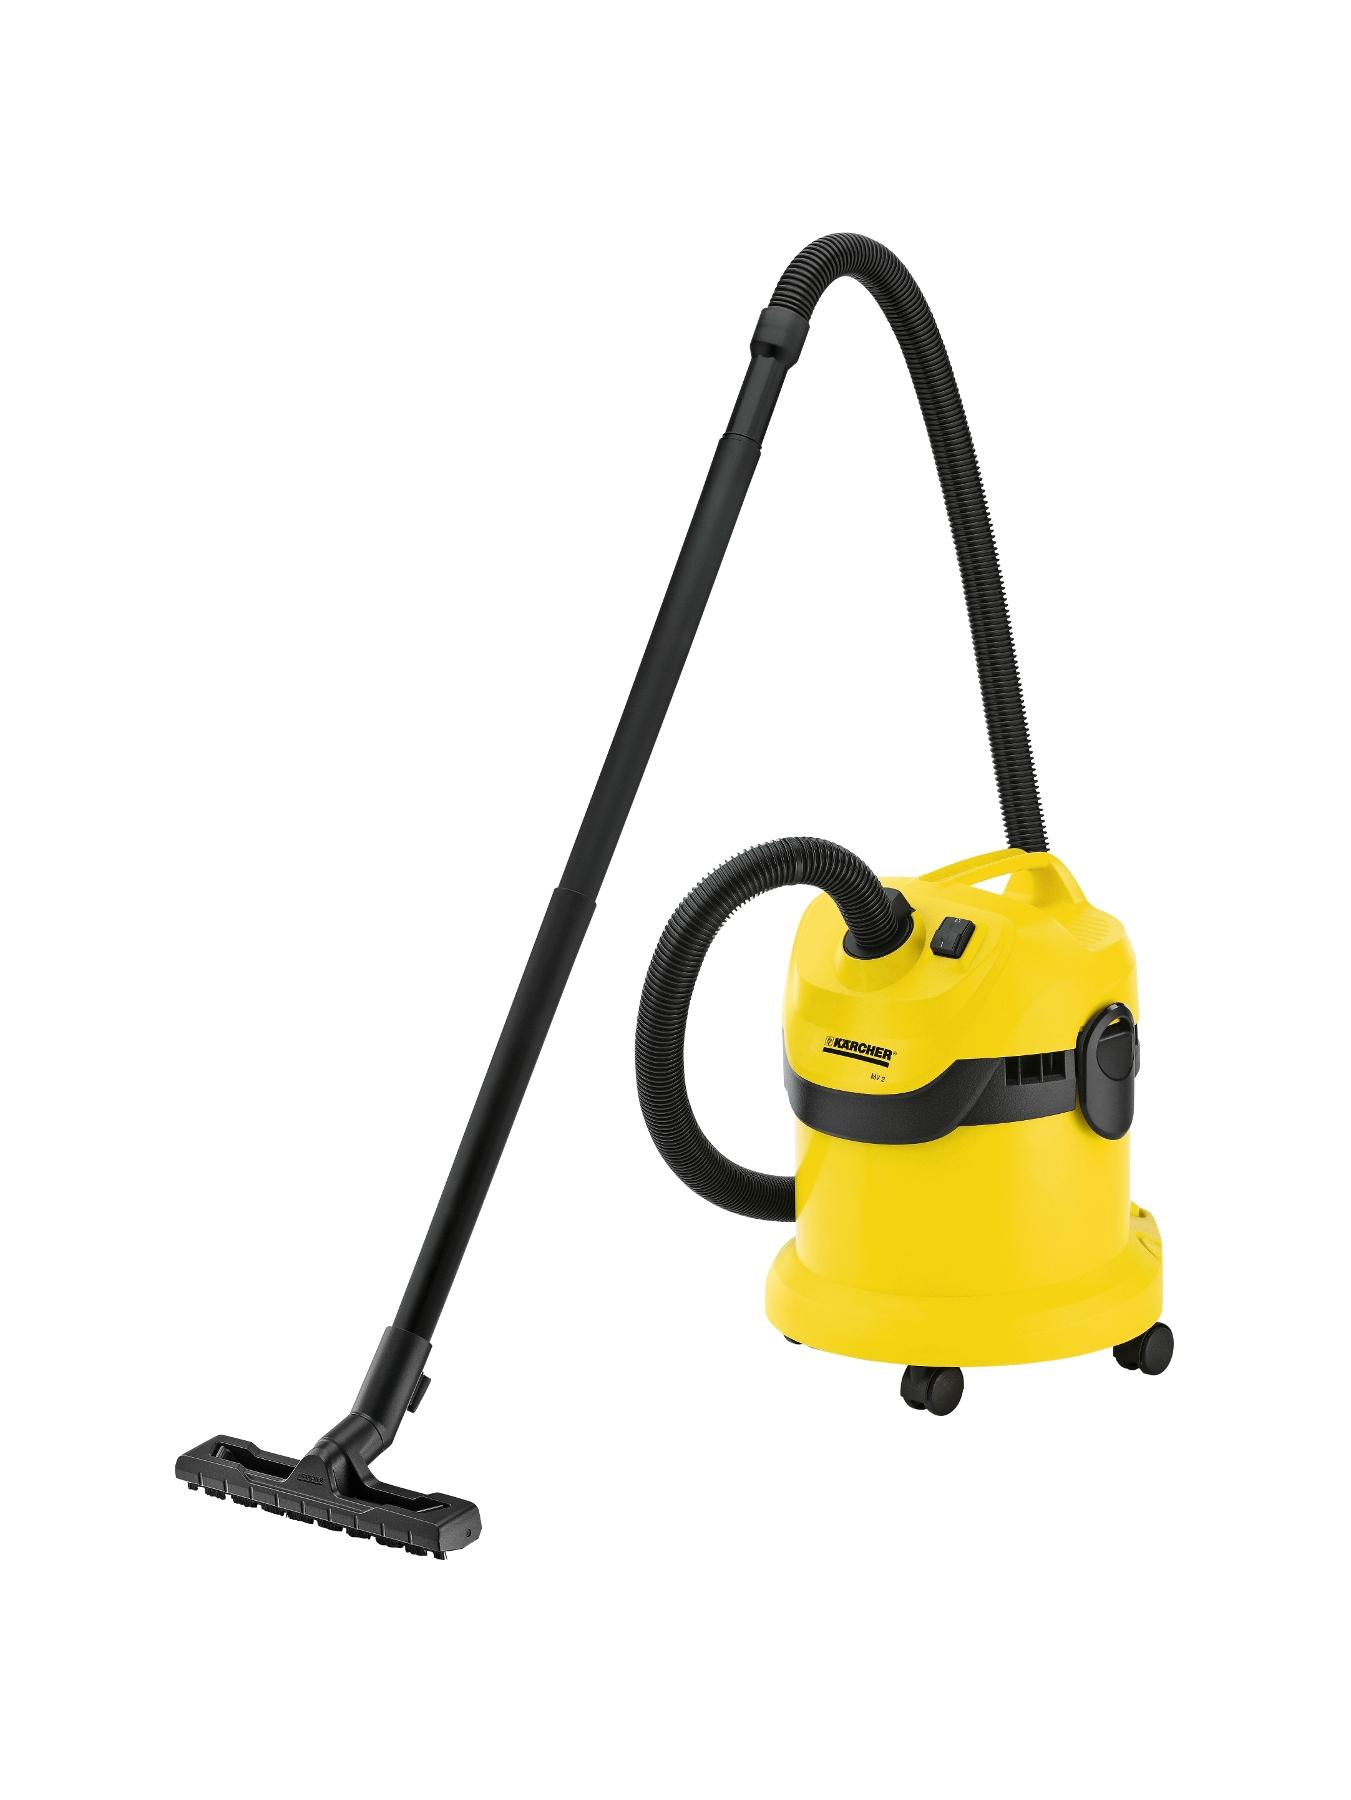 MV2 1200 Watt Wet and Dry Multi-Purpose Vacuum Cleaner